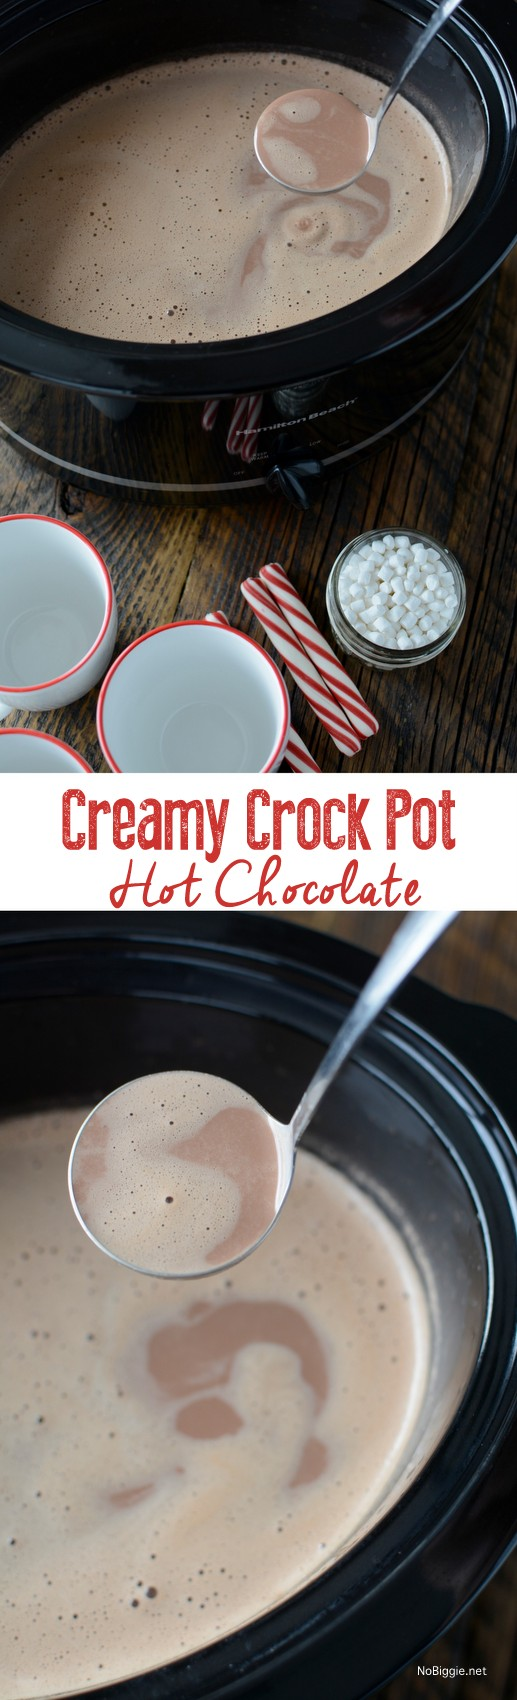 Creamy Crockpot Hot Chocolate | 25+ Polar Express Party Ideas